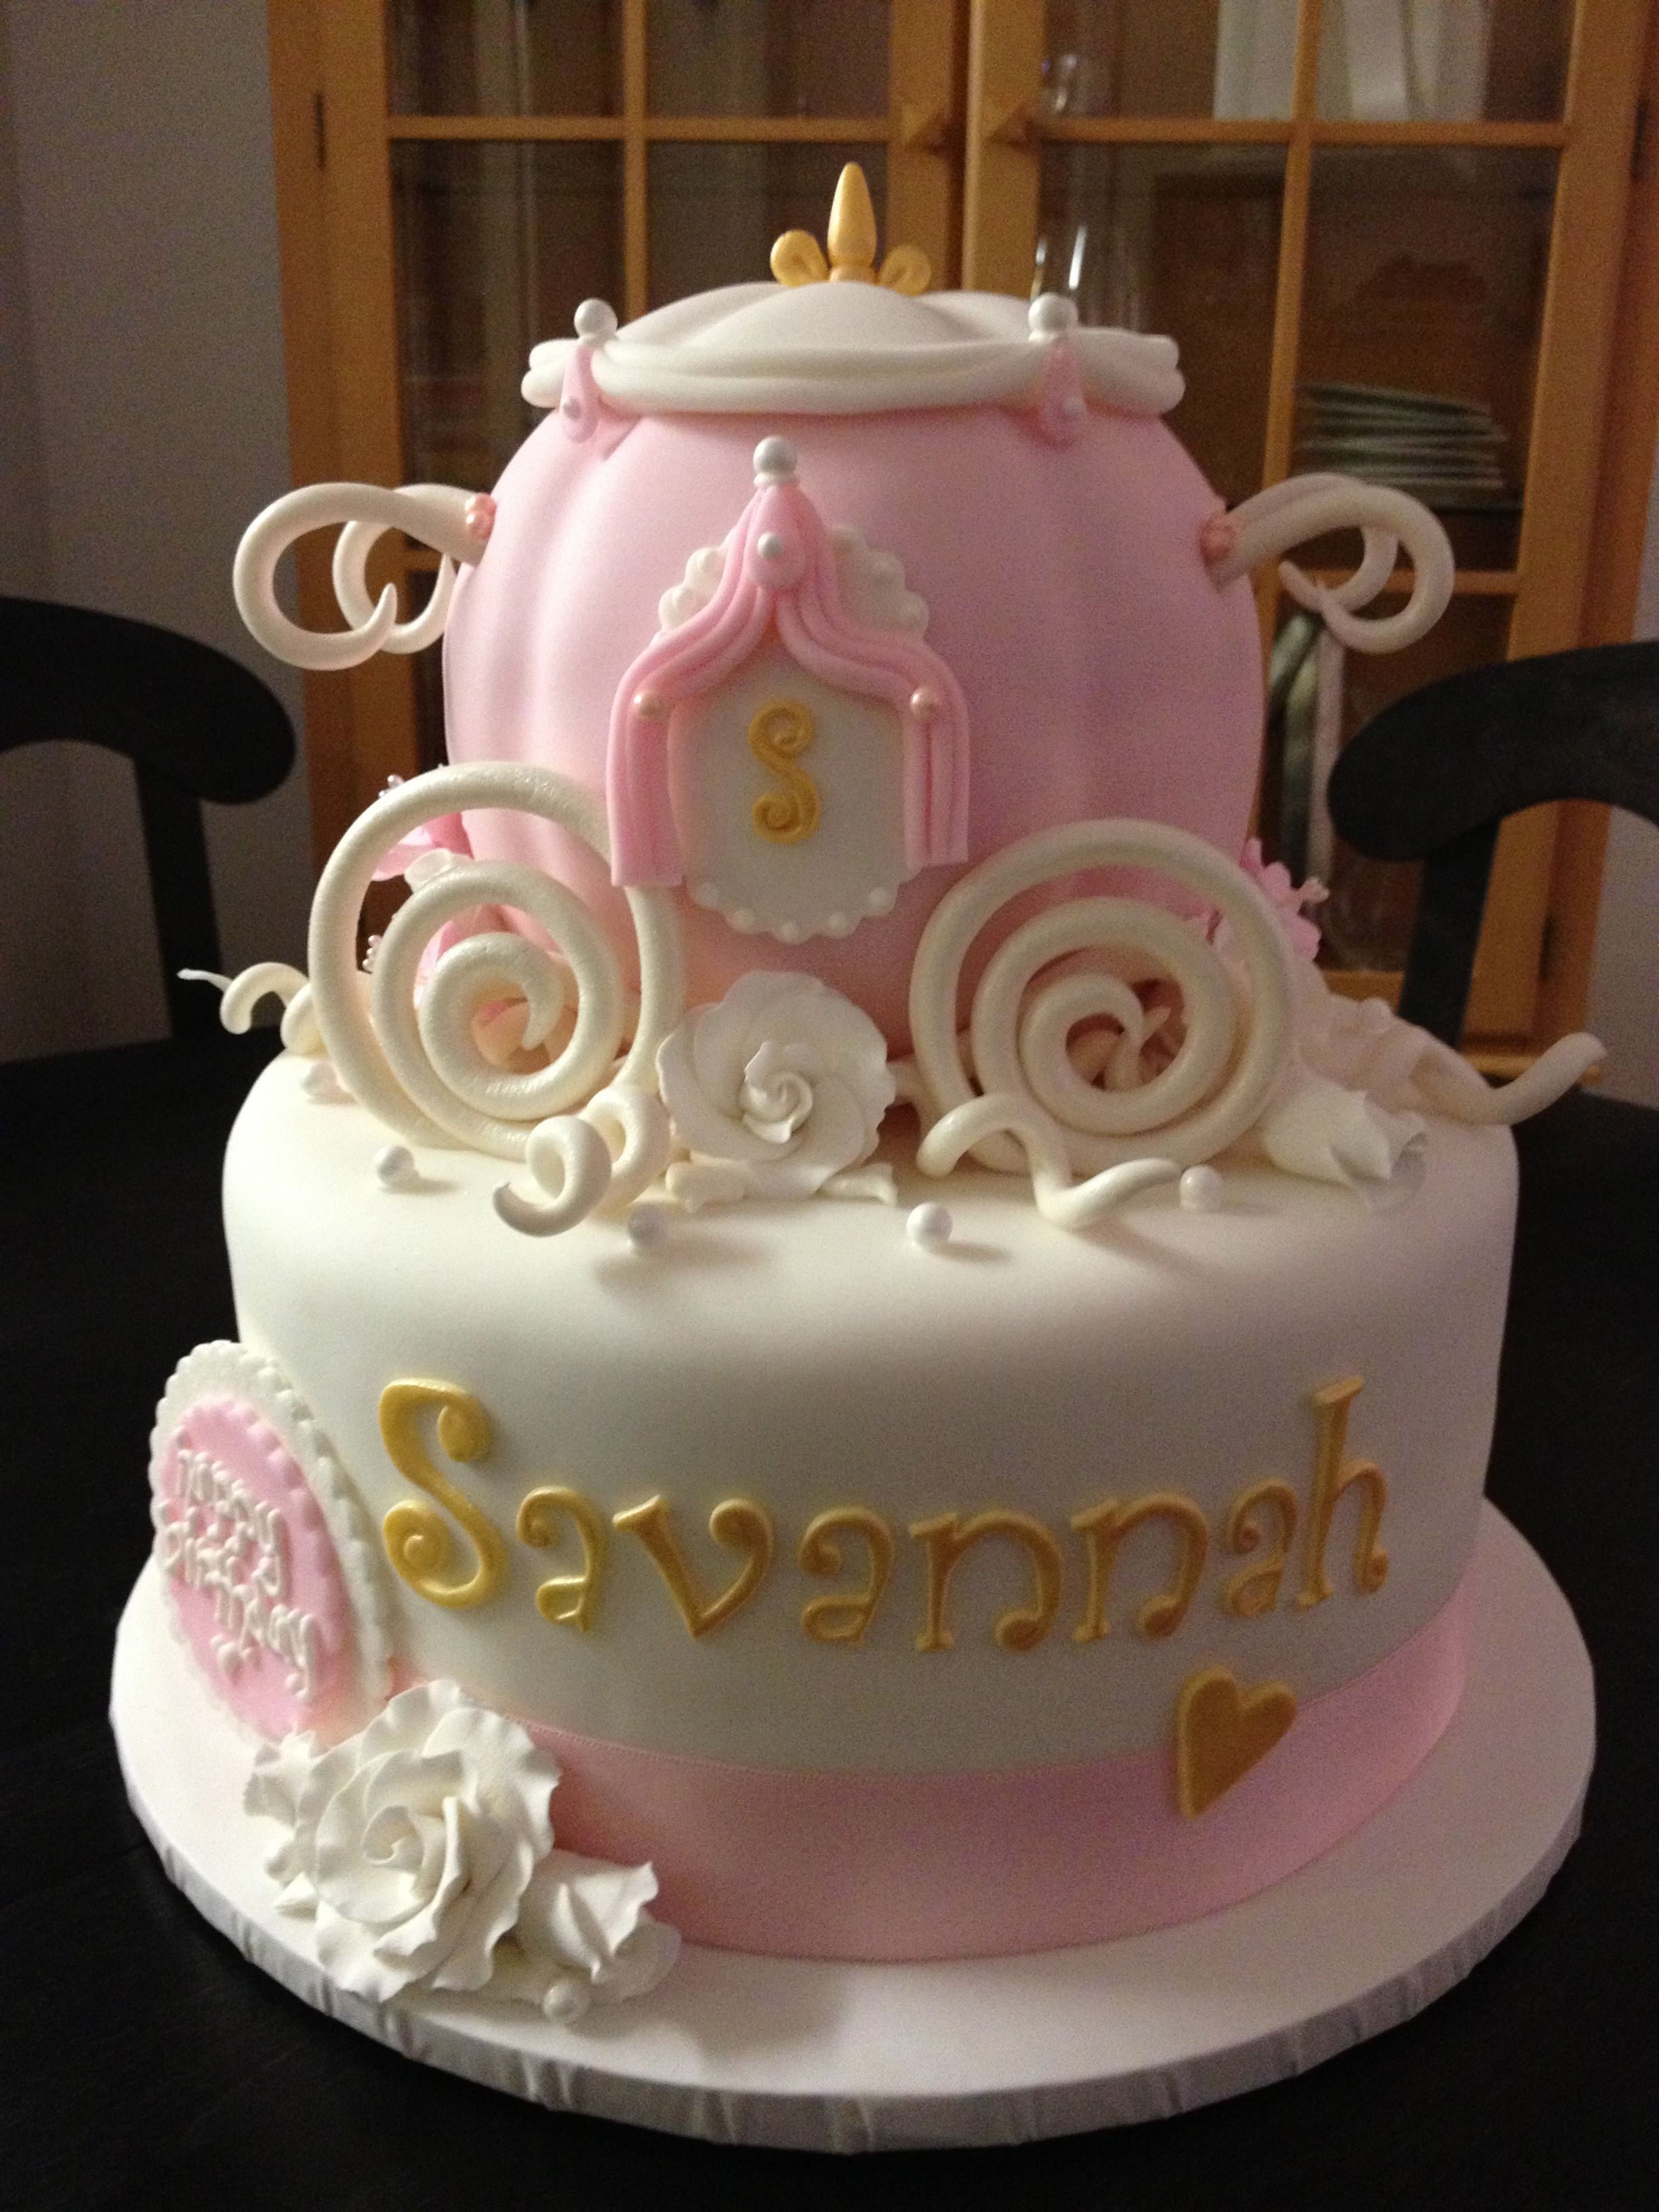 Cinderella's Carriage Cakes | Carriage cake, Cinderella carriage ...